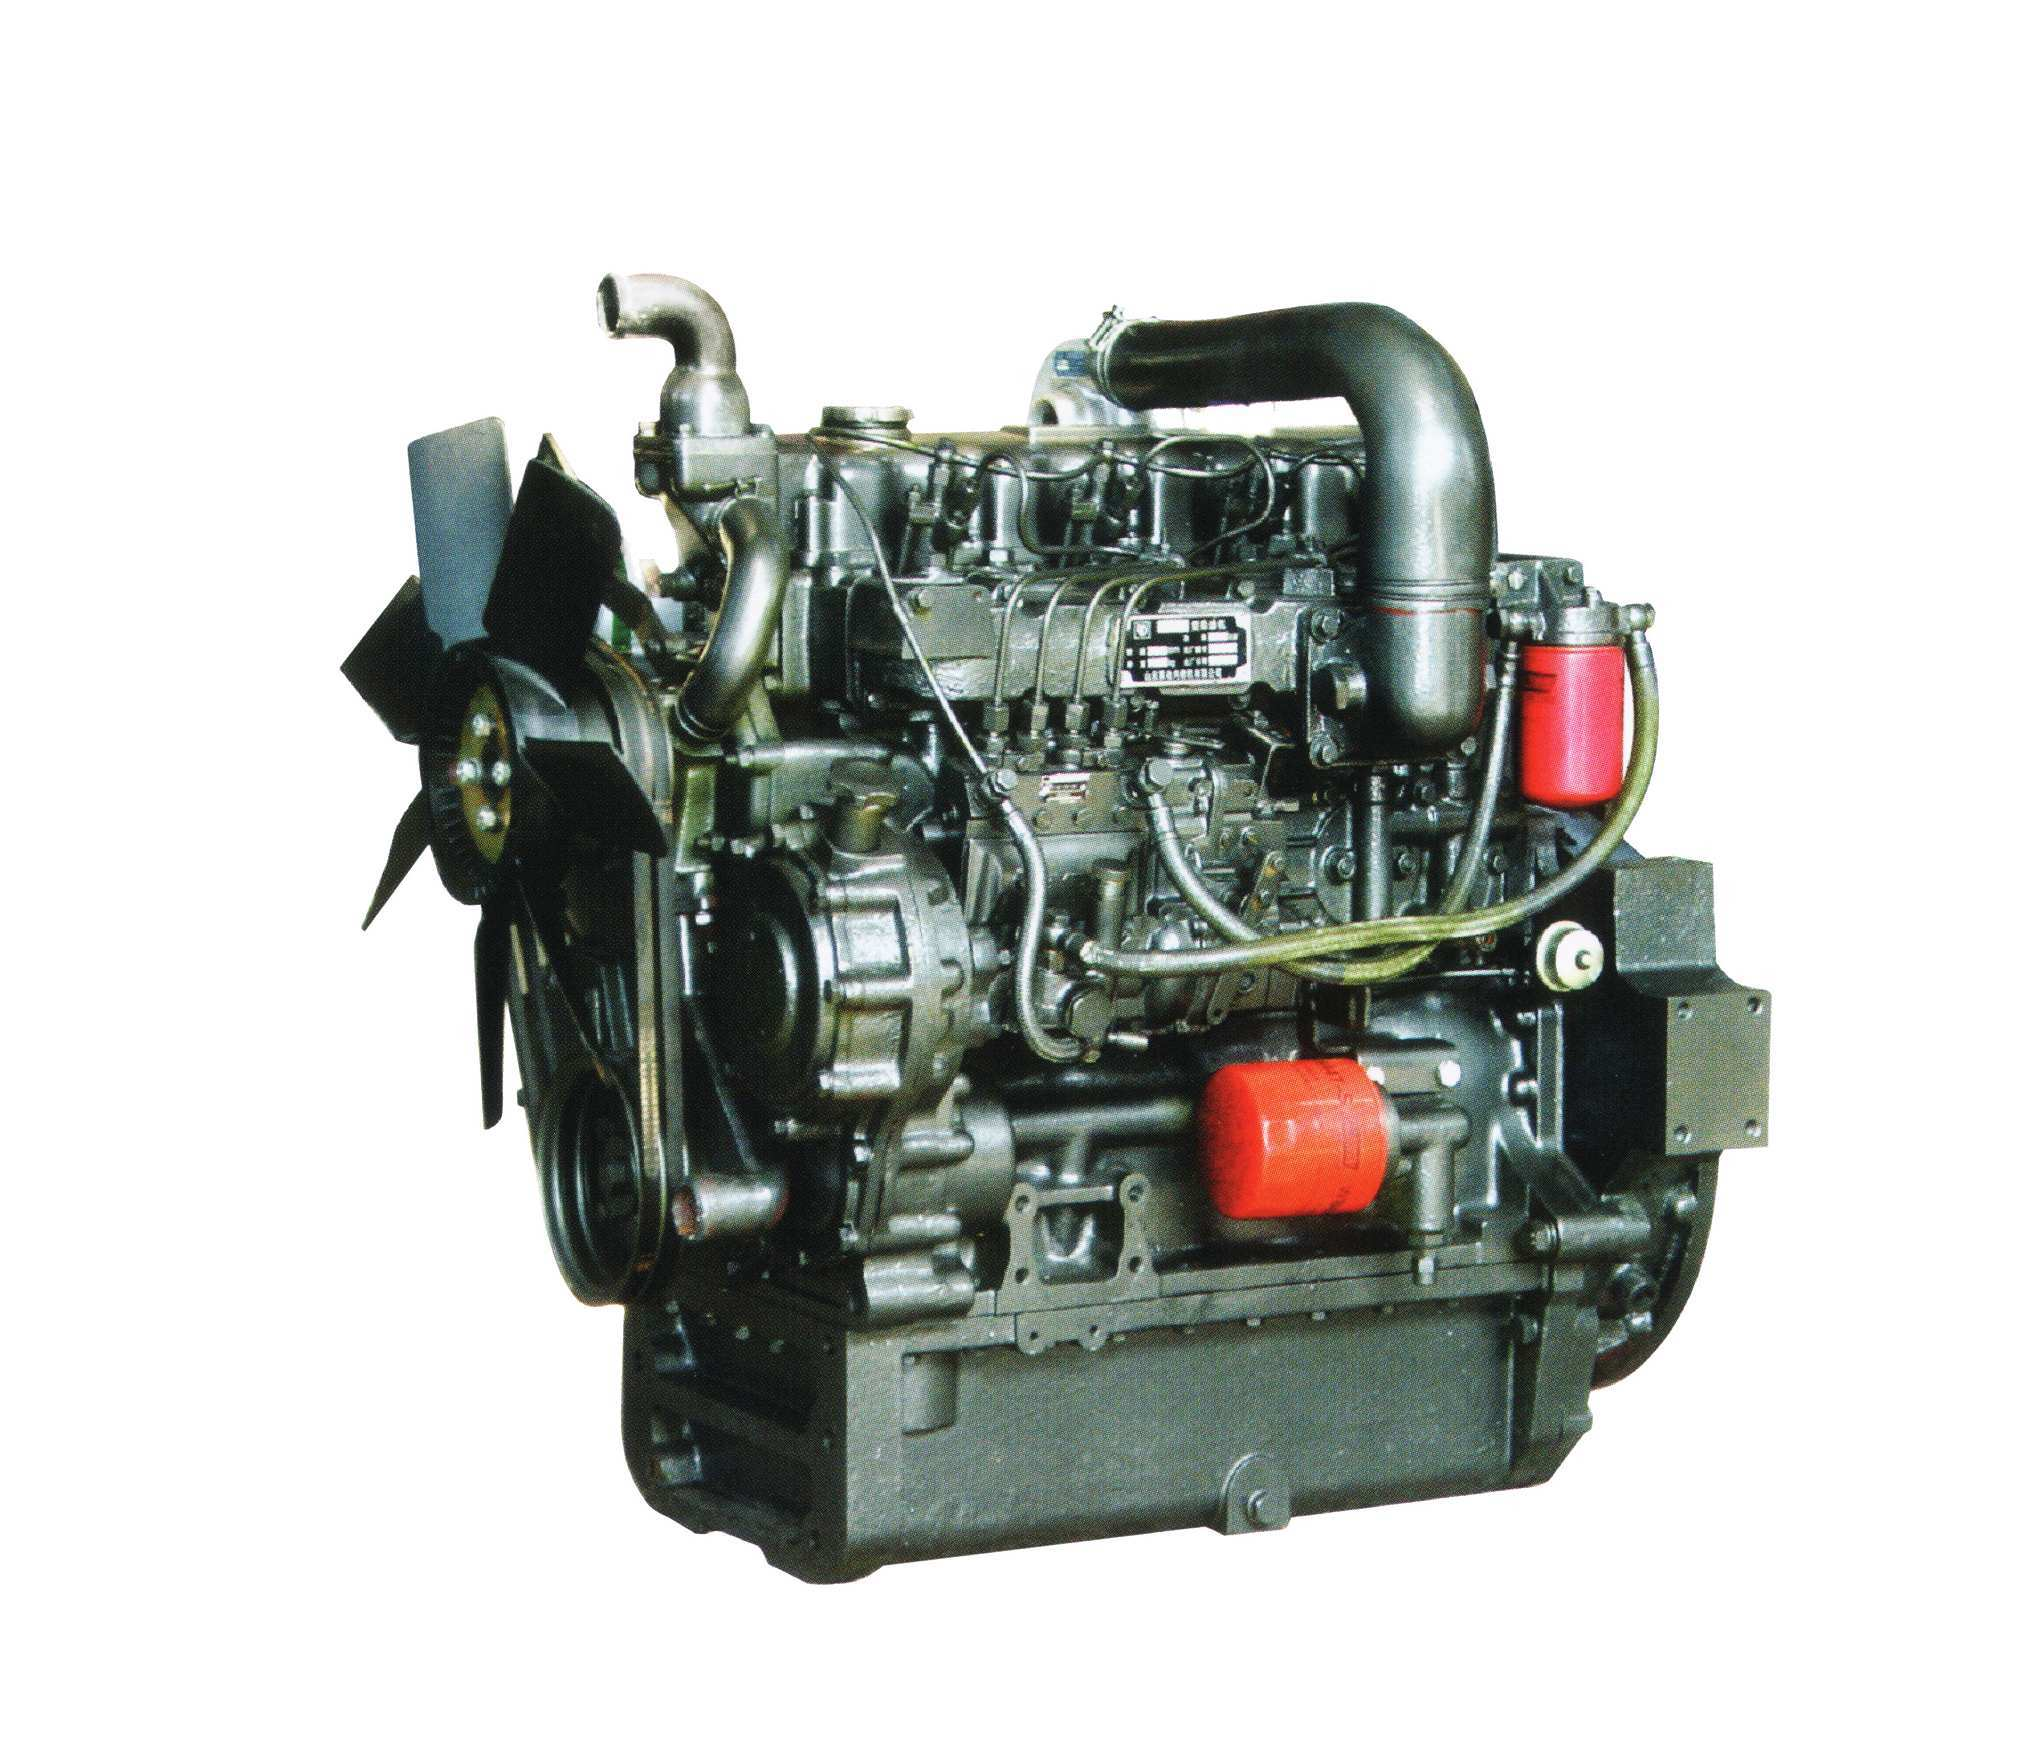 50-100 Hpdiesel Engine for Large-Sized Tractors